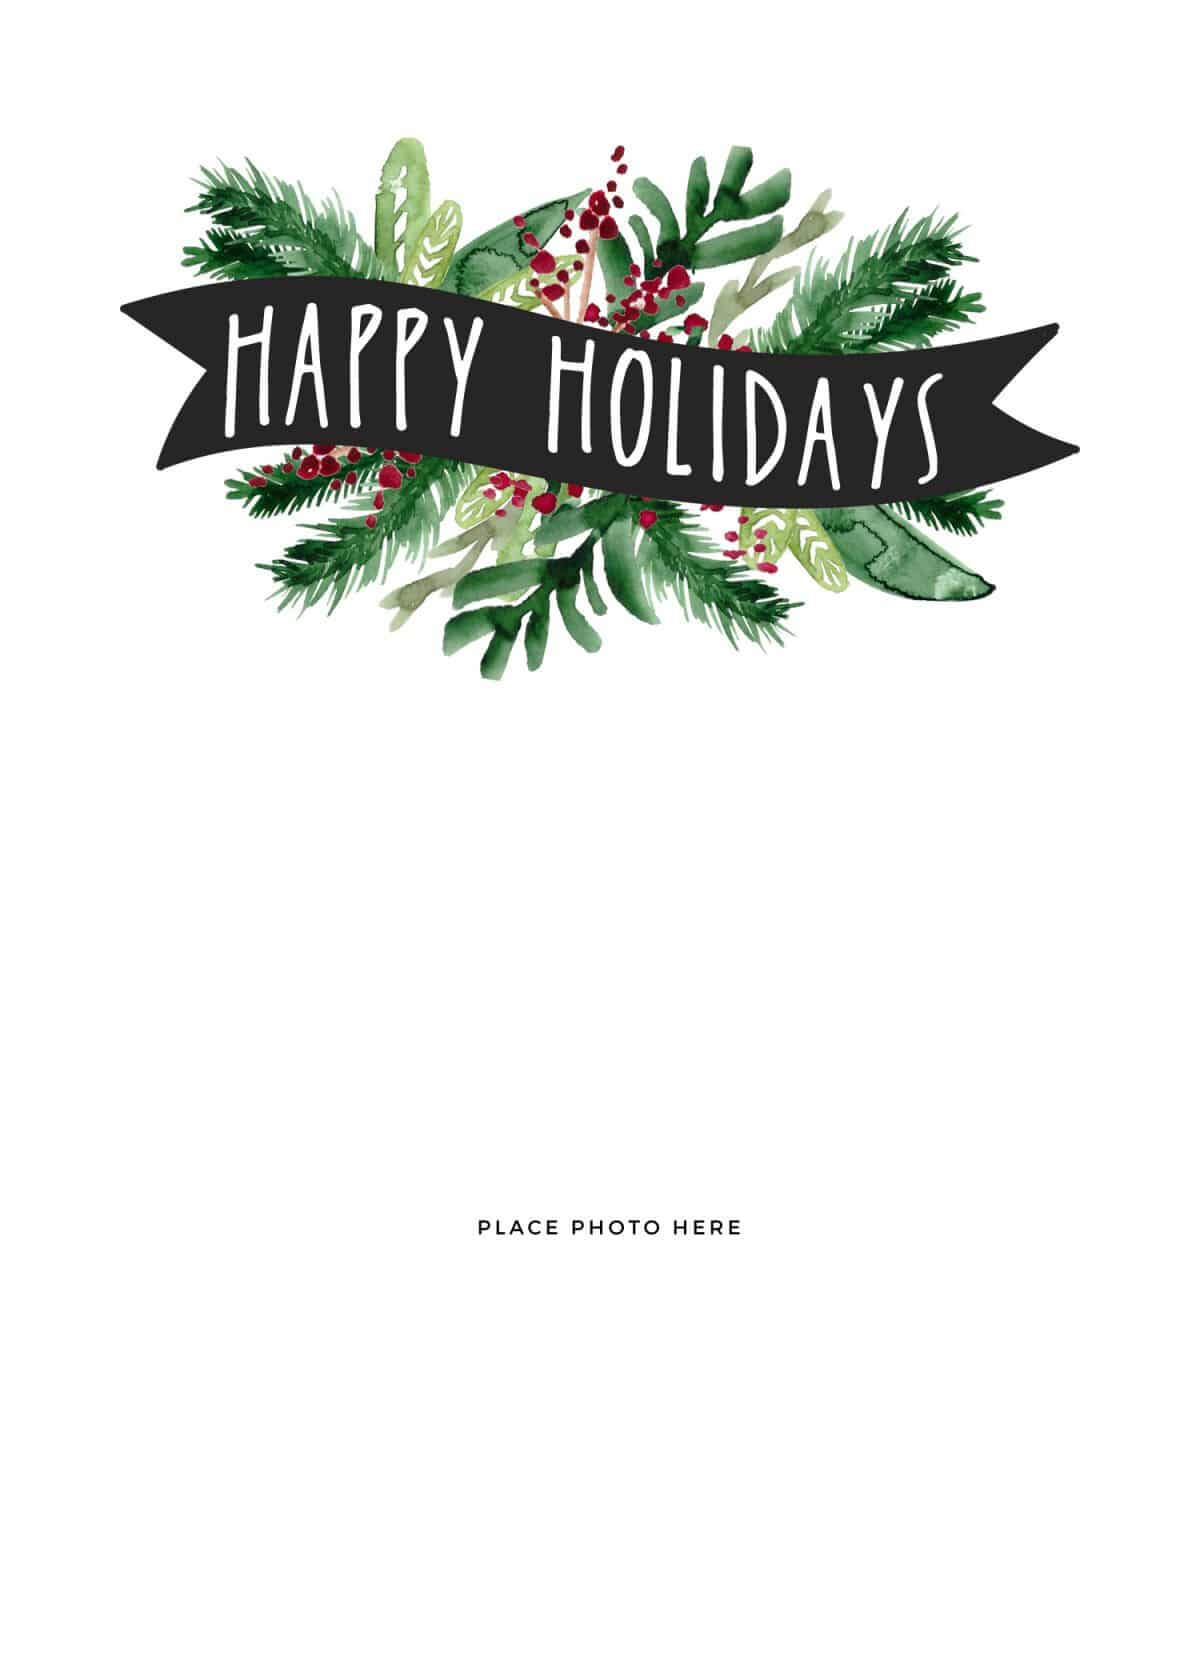 Make Your Own Photo Christmas Cards (For Free!) – Somewhat Throughout Free Holiday Photo Card Templates